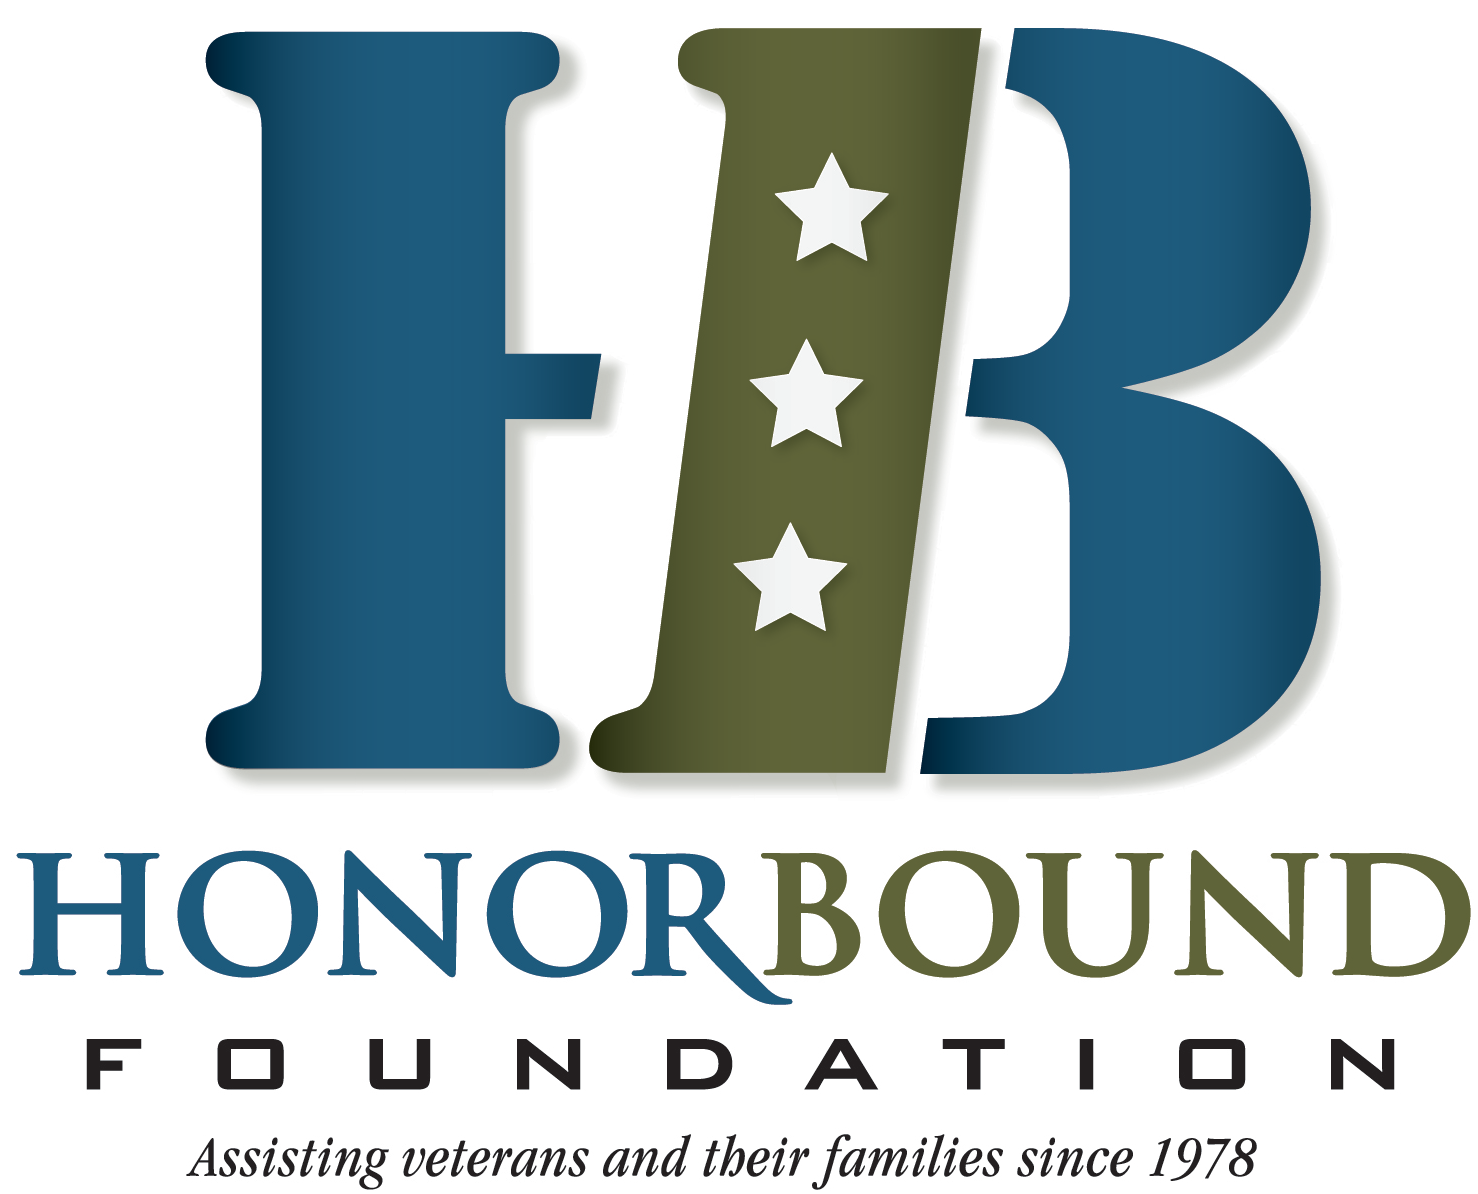 Alabama Car Donations - HonorBound Foundation - DonatecarUSA.com